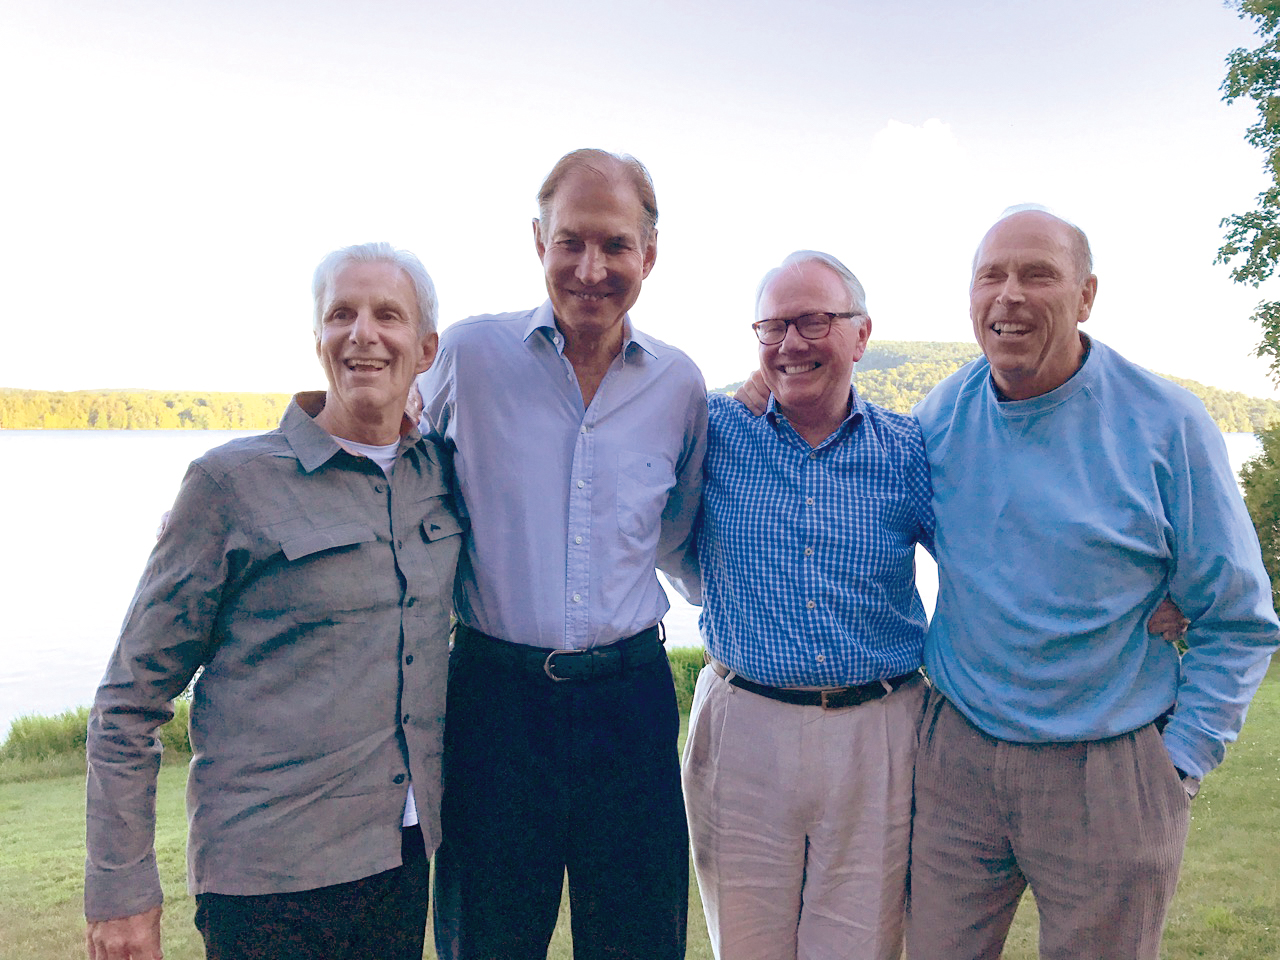 Mini-reunion in the central Adirondacks (l. to r.): Eric von Starck '65, Kiril Sokoloff '65, Nat Prentice '65, and Bucky Putnam '65.